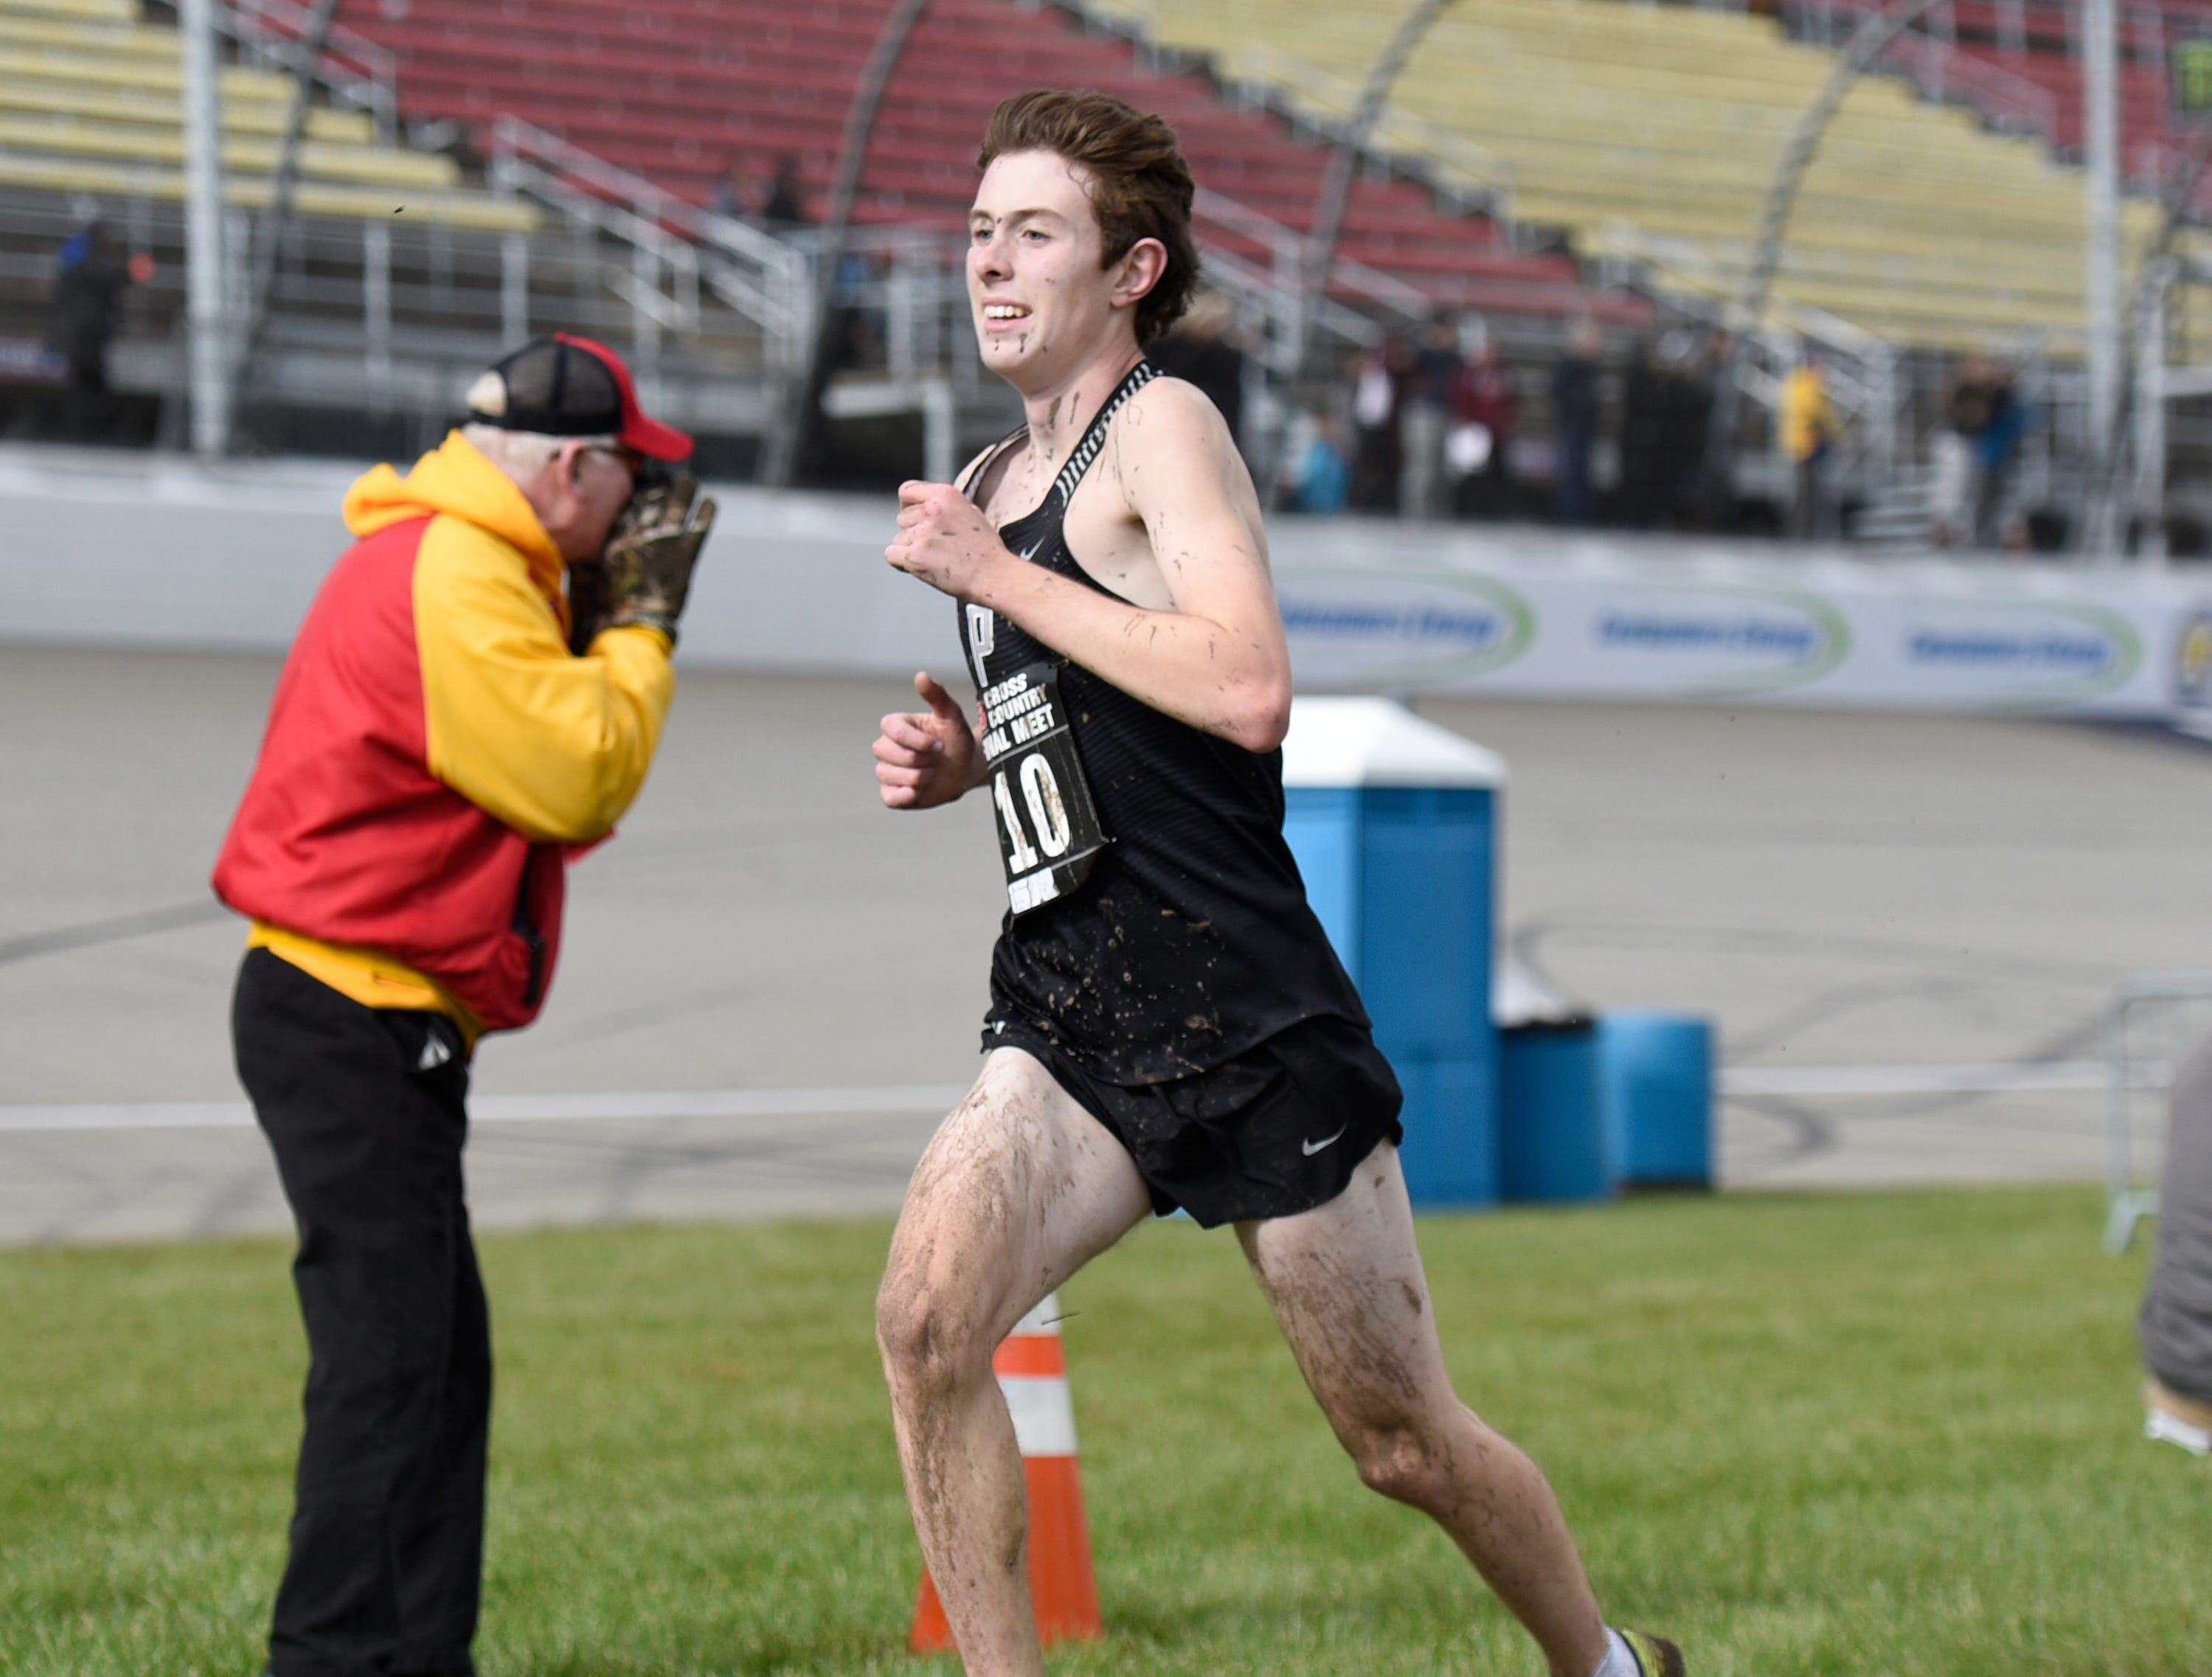 Plymouth's Tyler Mussen during the Division 1 2018 cross country finals at Michigan International Speedway.